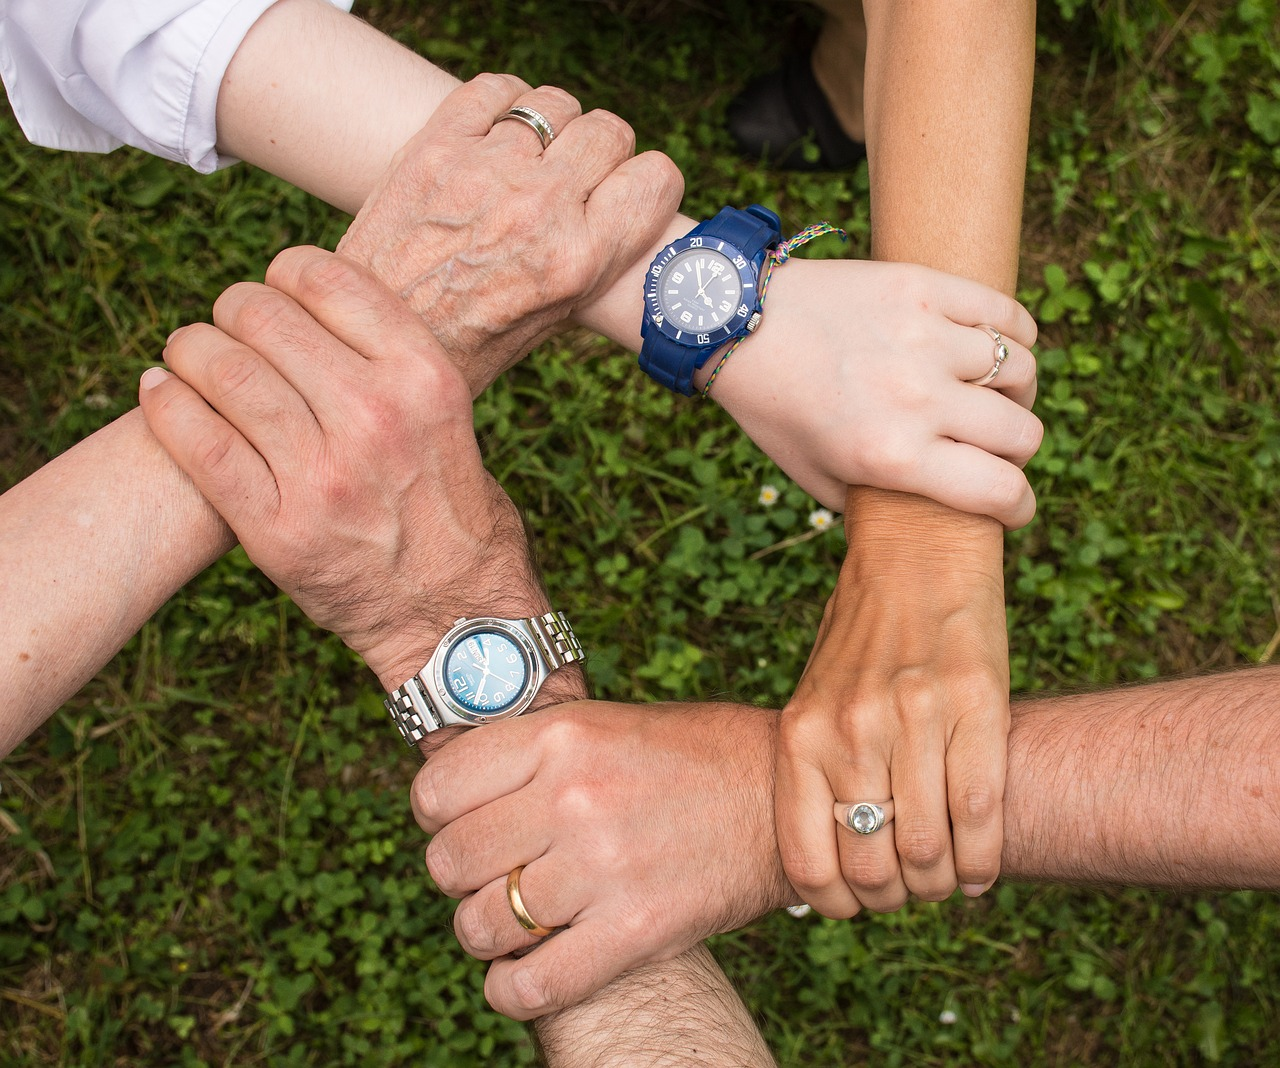 hands holding one another family support addiction treatment